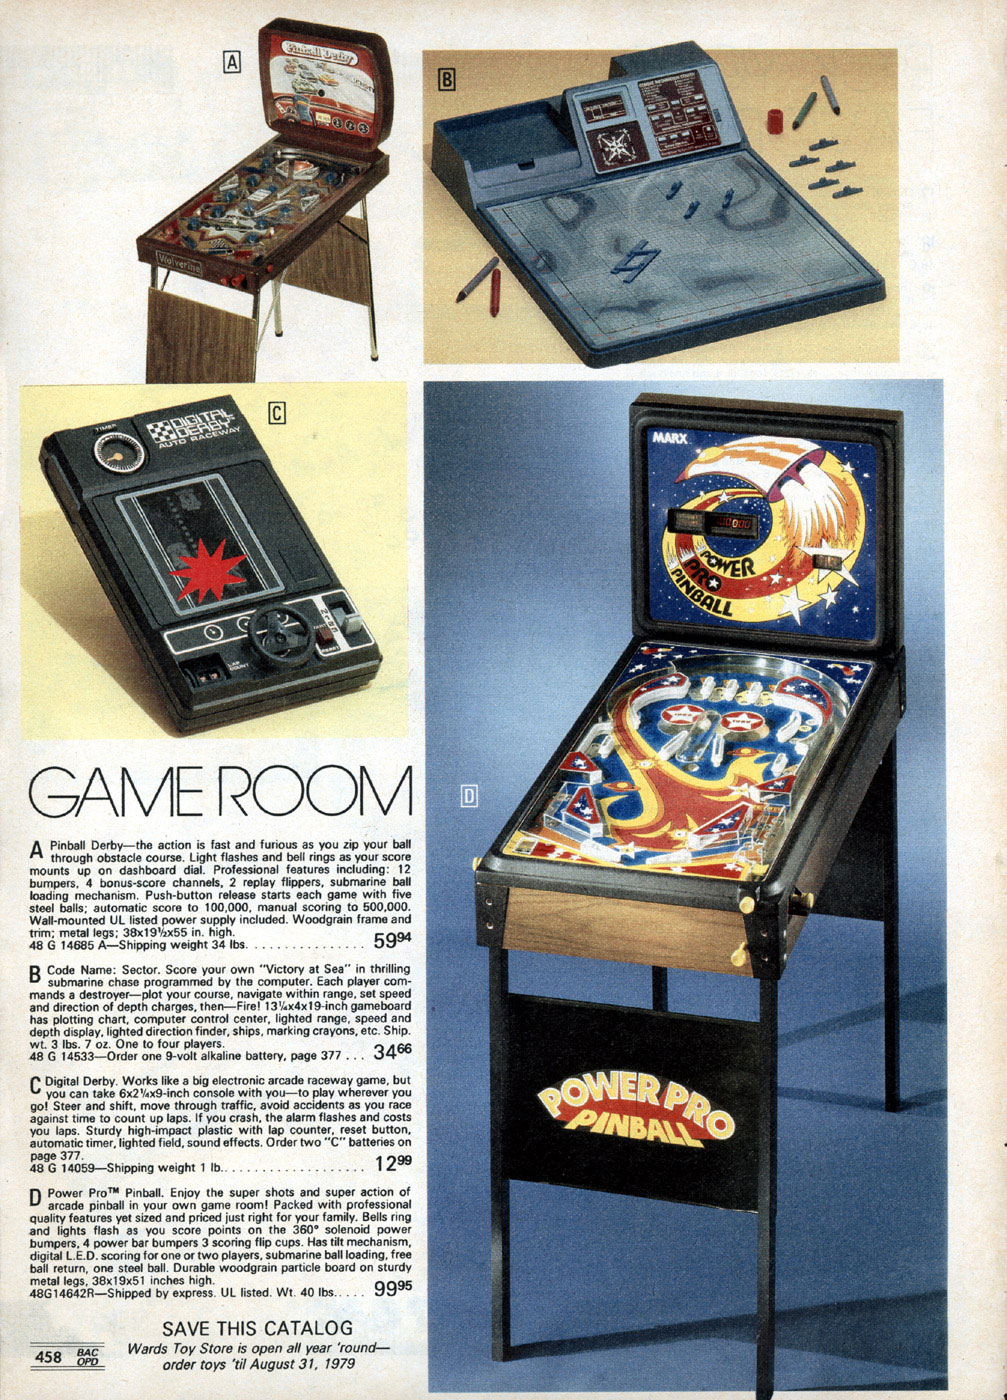 Retro toys and videoGames from the Montgomery Ward